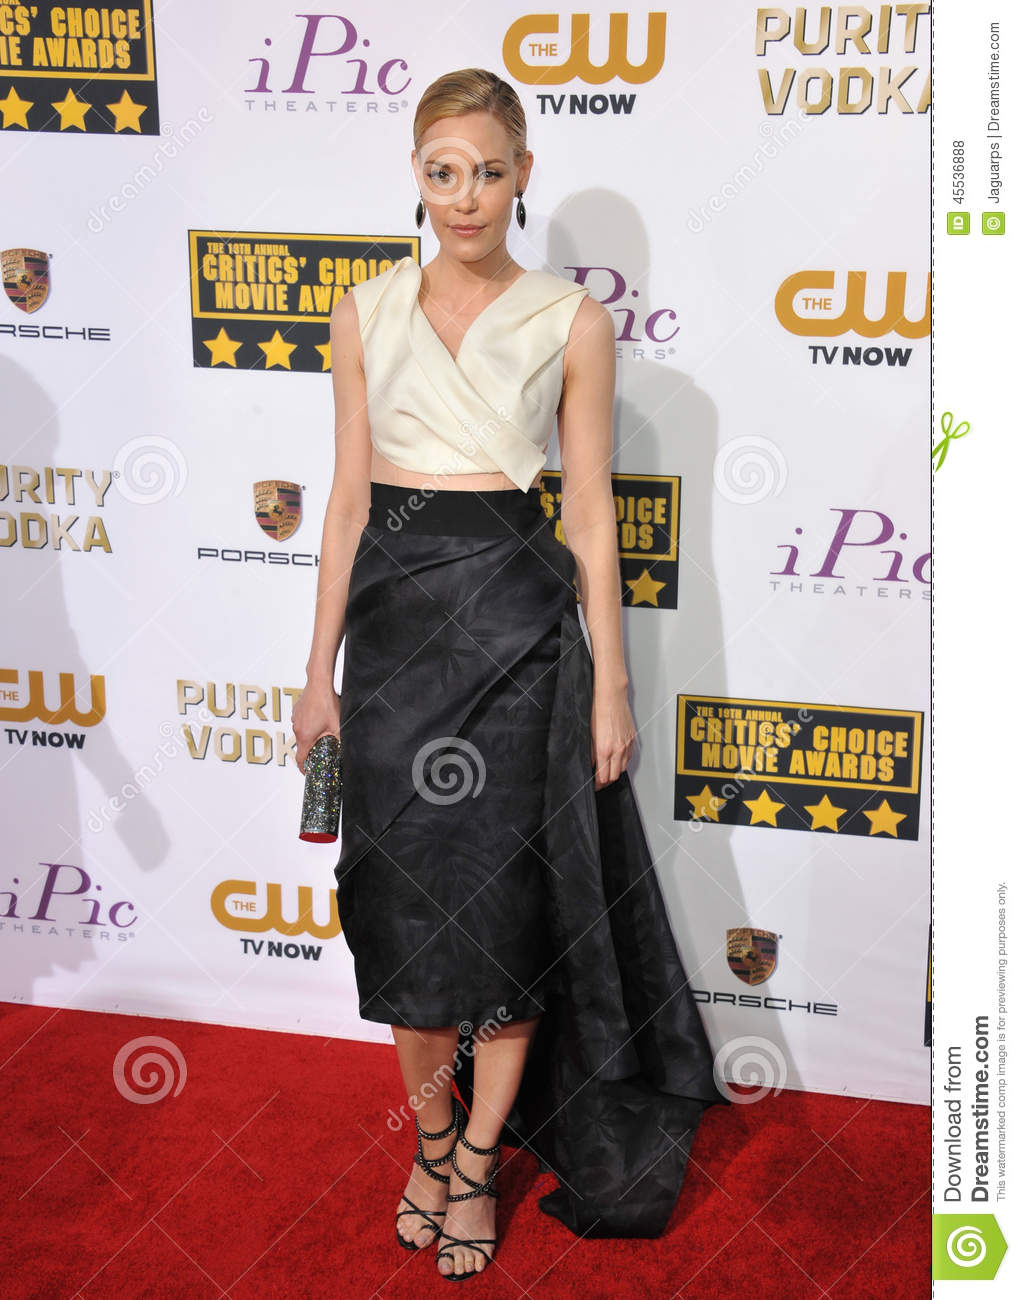 images Jessica Hall (American actress)